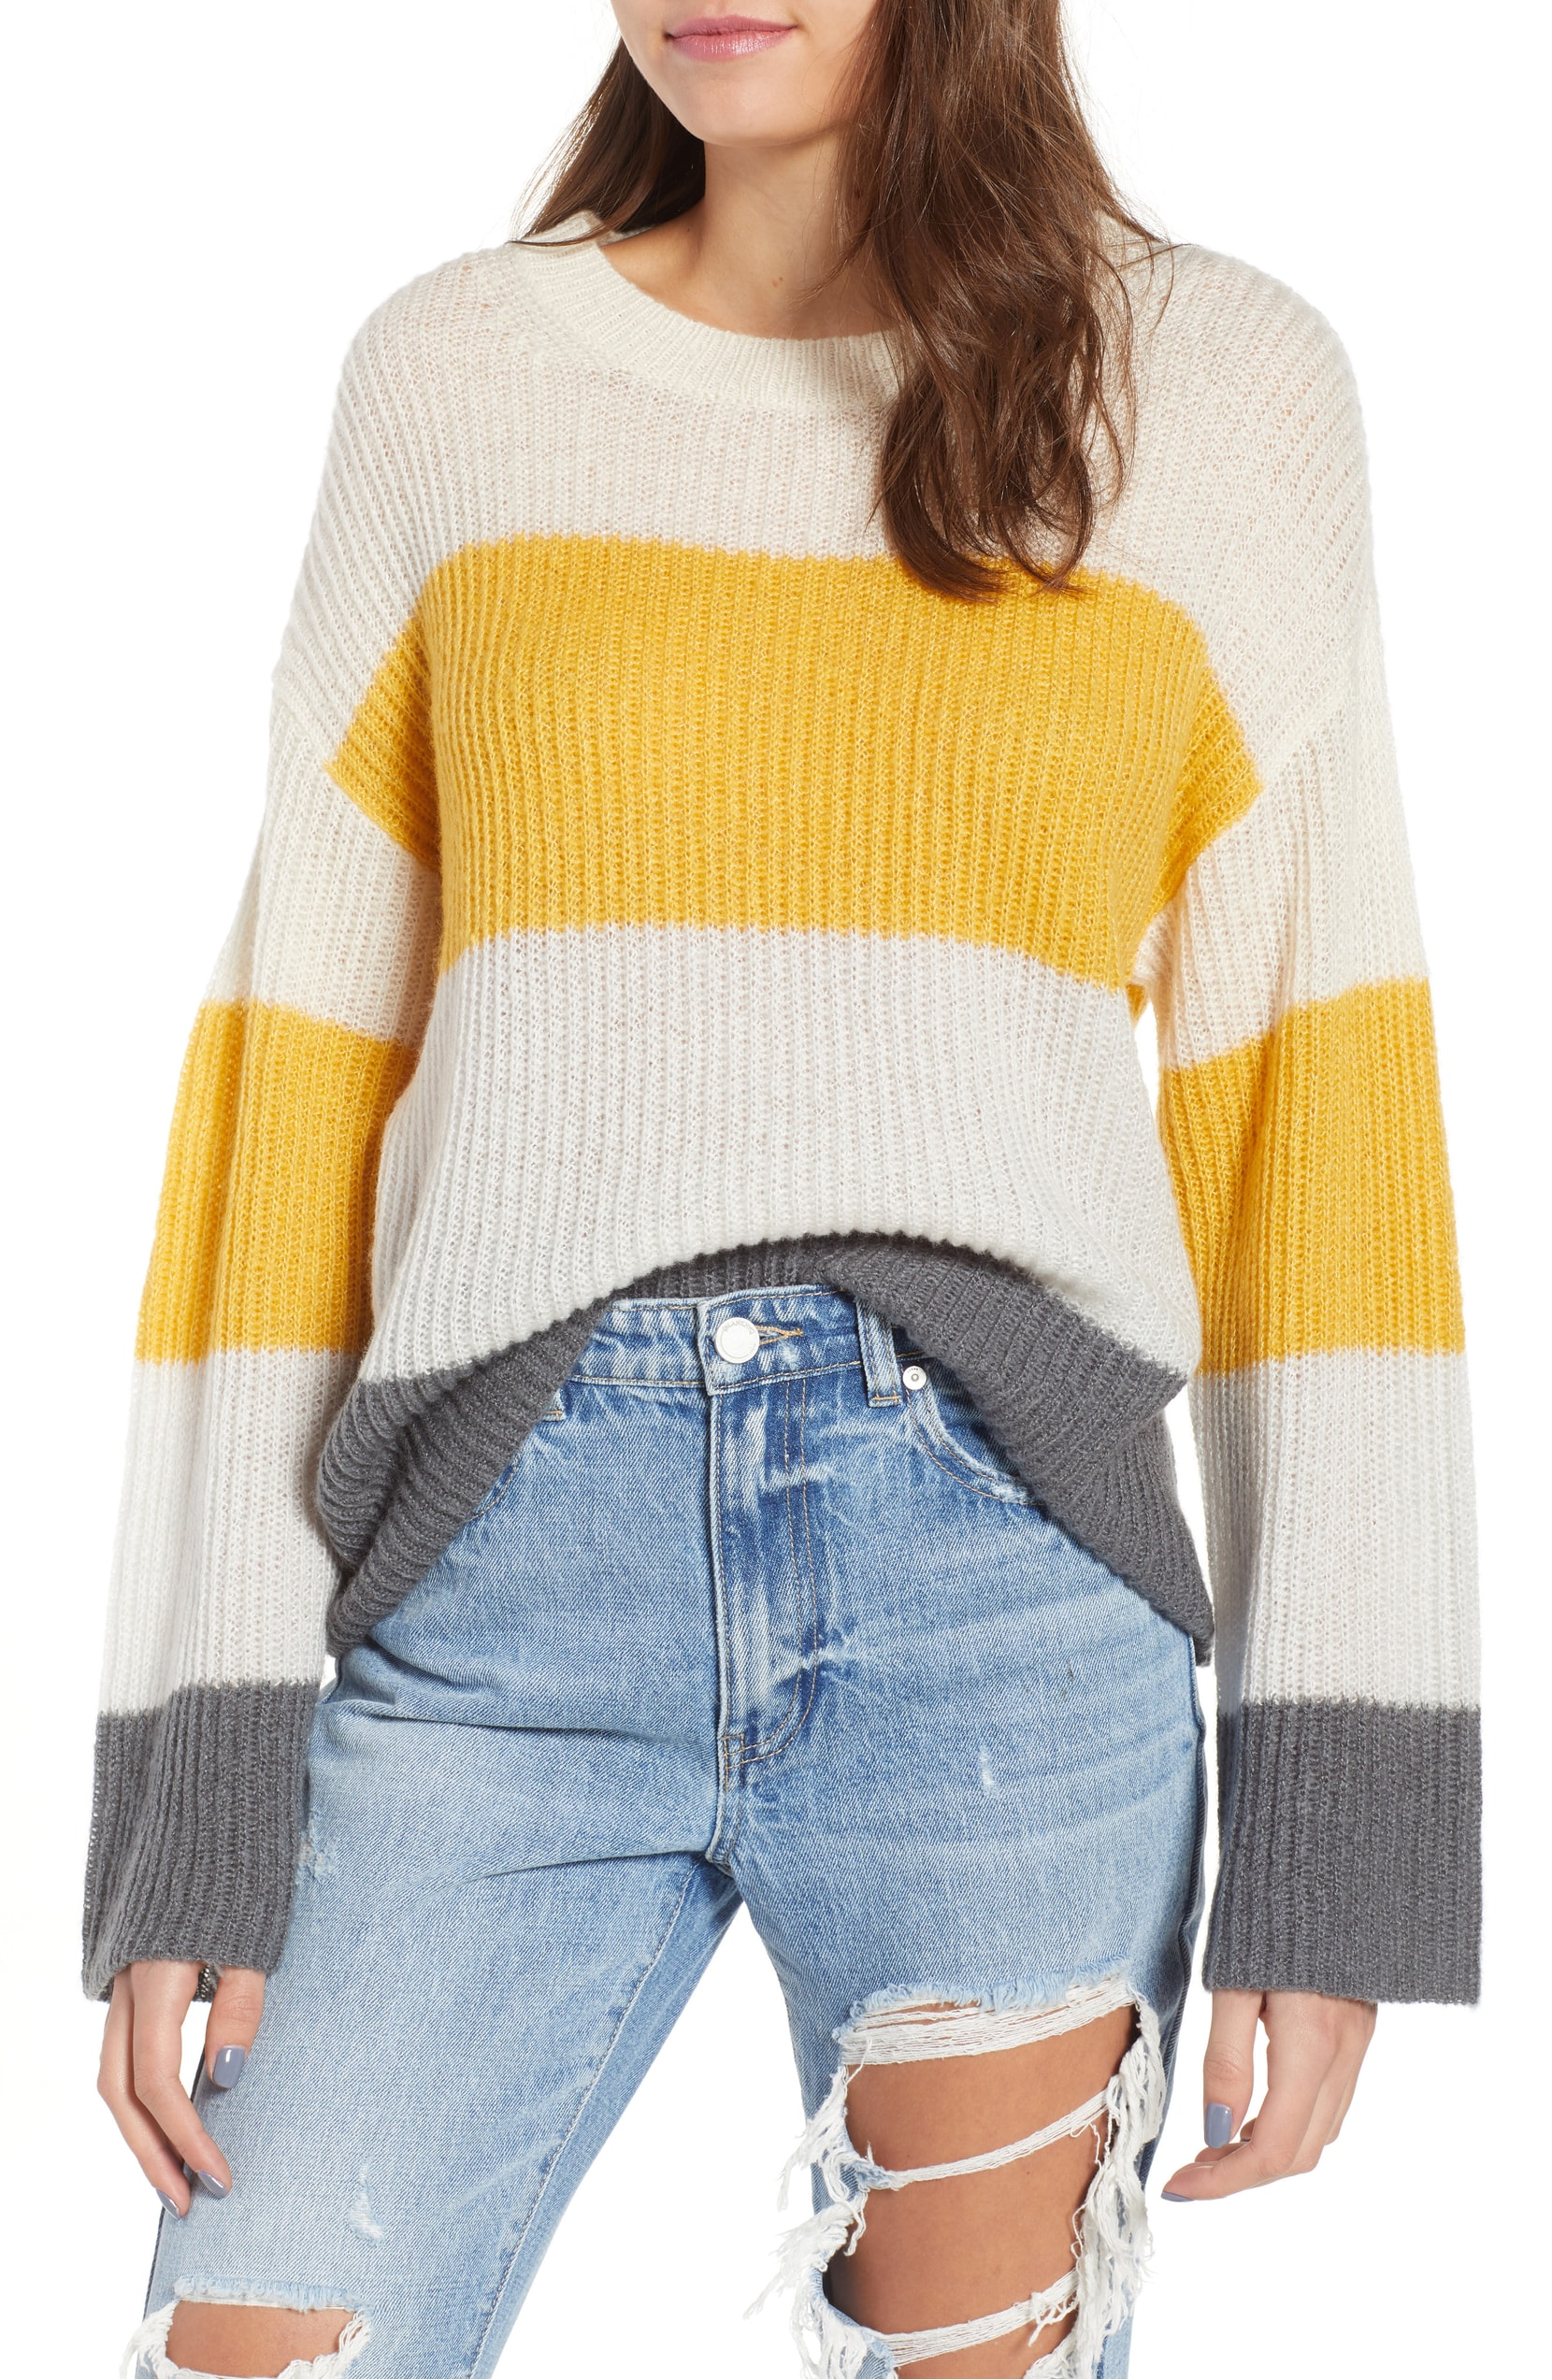 The Trend: Chunky Sweaters. Broad stripes and dropped shoulders accentuate the slouchy fit of a chunky-knit sweater that's best paired with carefree weekends. BP - $49.00. (Image: Nordstrom)